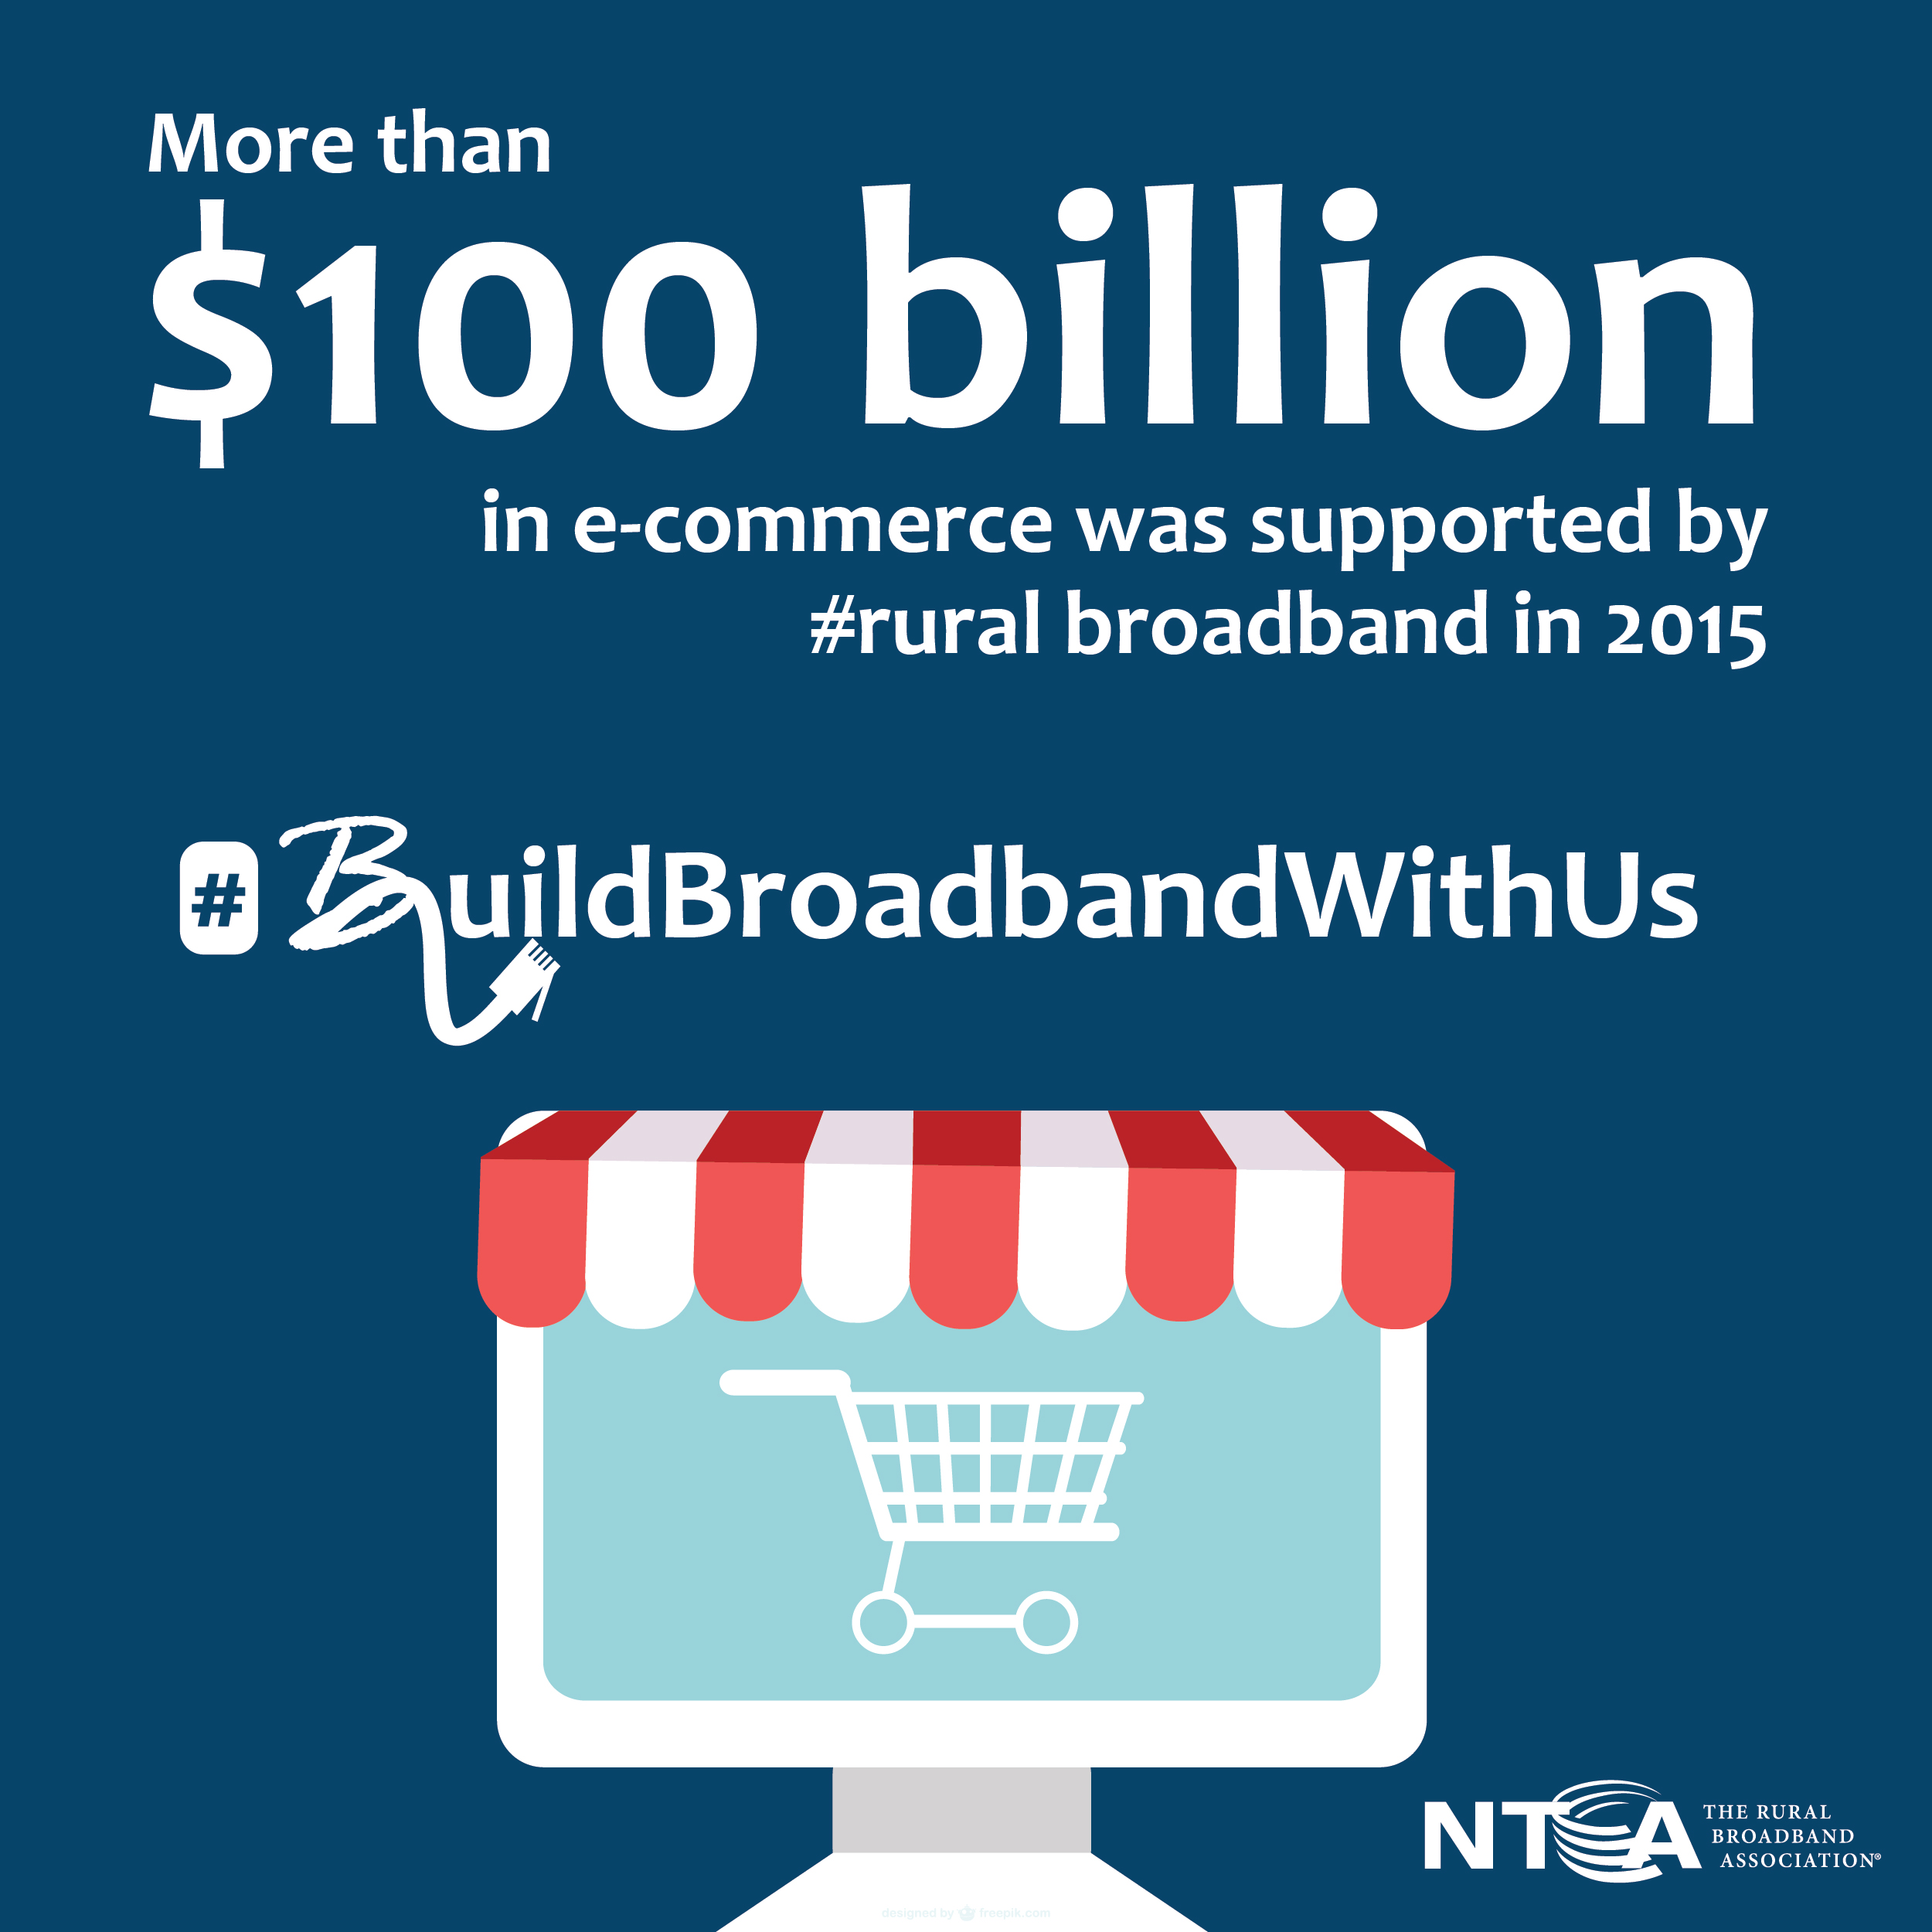 More than $100 billion in e-commerce was supported by #rural broadband in 2015